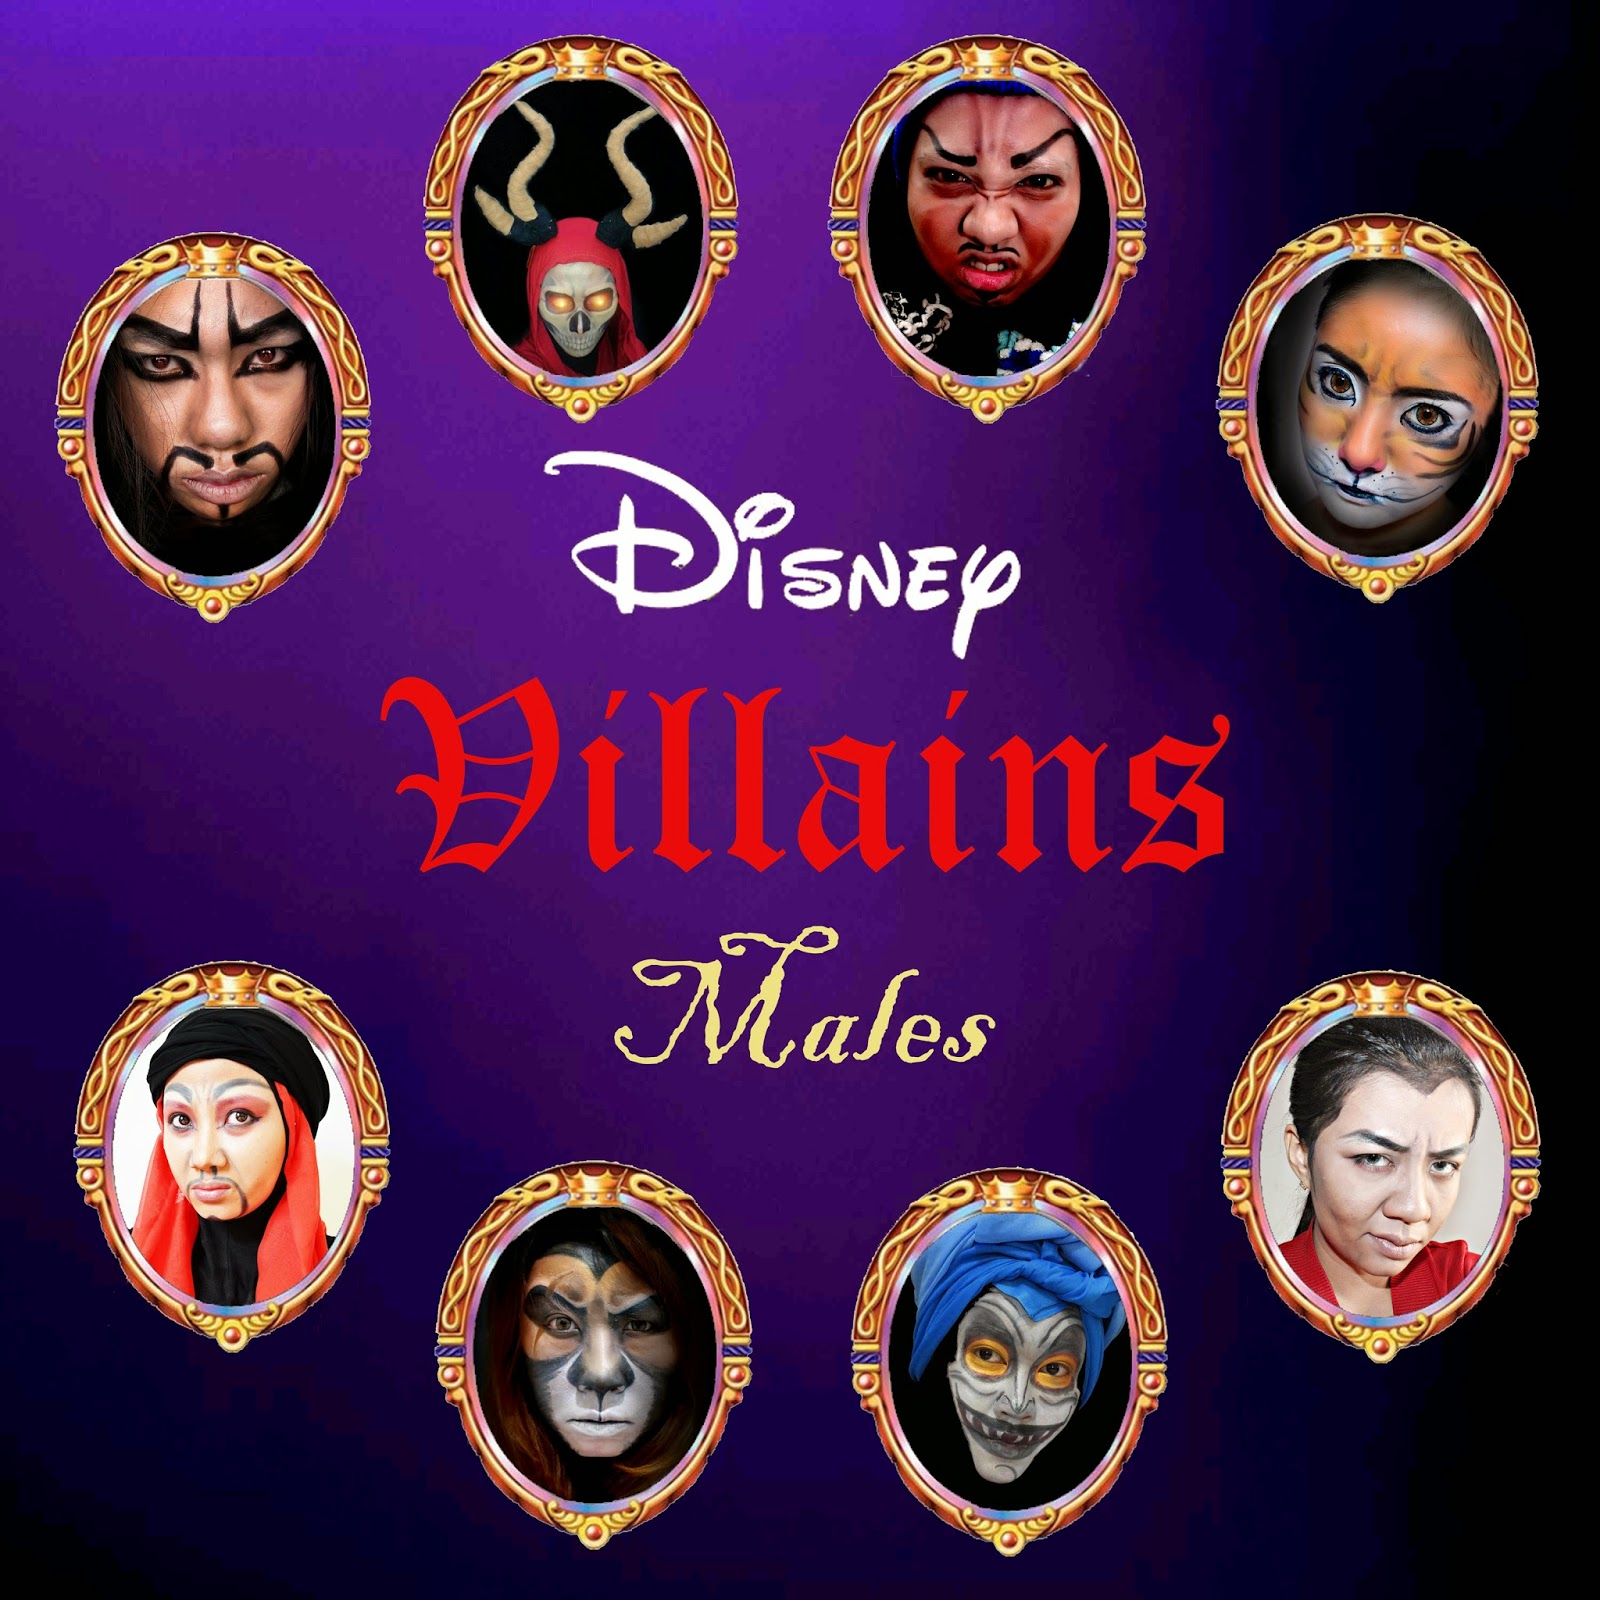 Collaboration of Disney Villains - Males